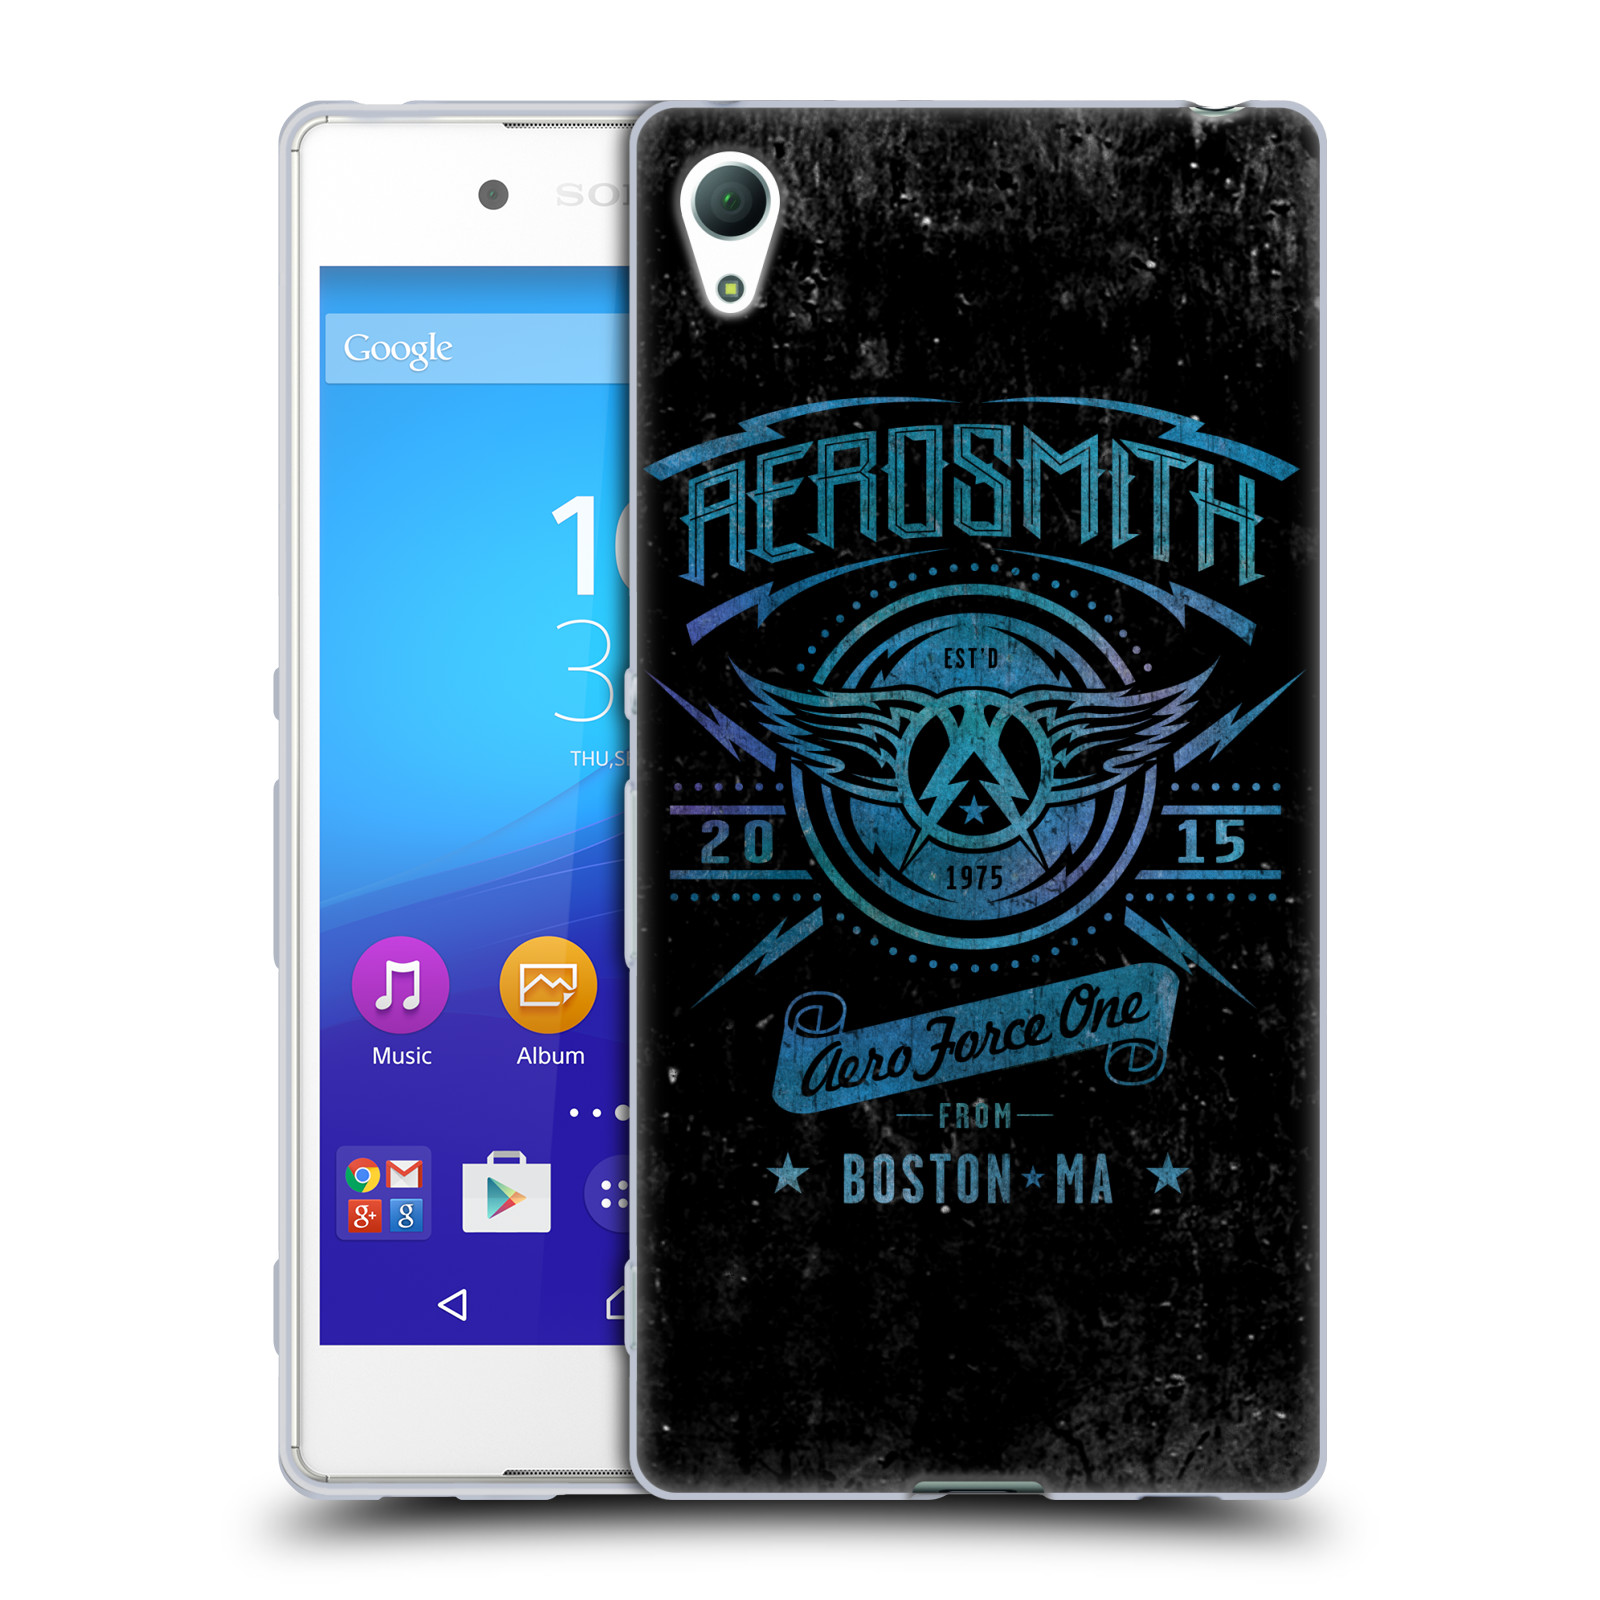 Silikonové pouzdro na mobil Sony Xperia Z3+ (Plus) HEAD CASE - Aerosmith - Aero Force One